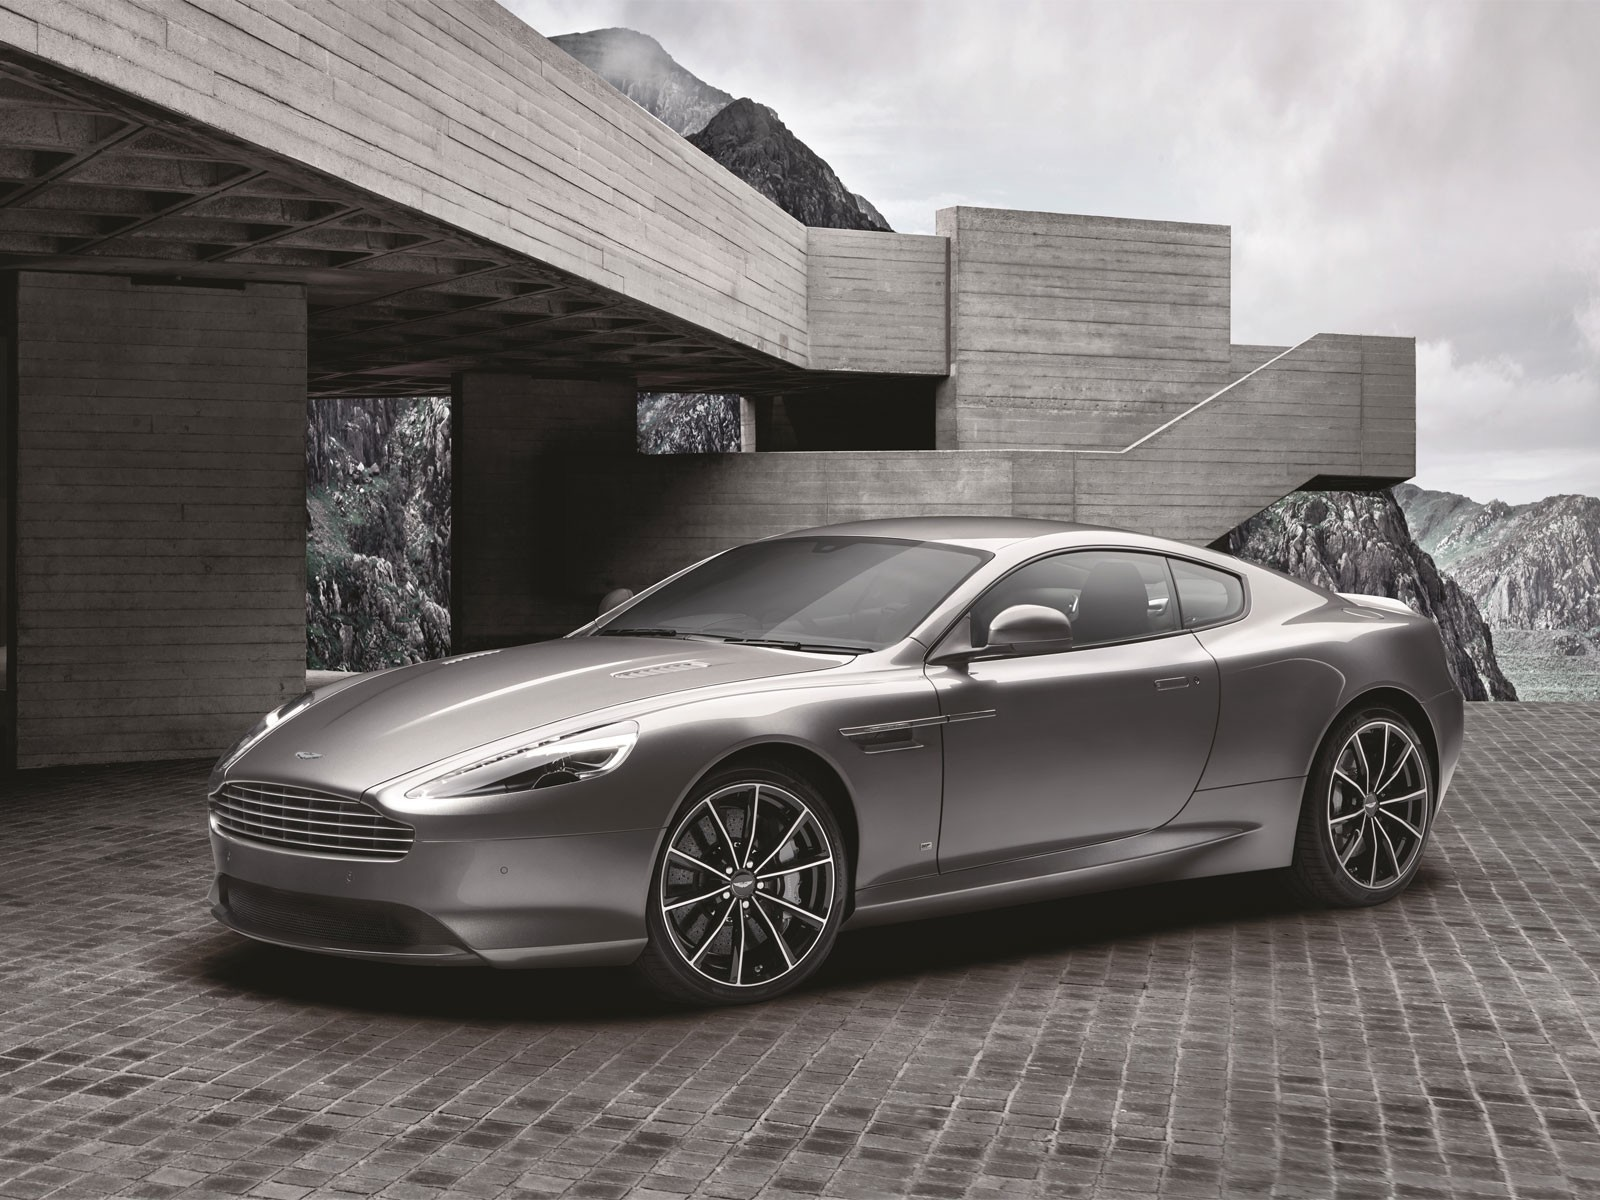 foto streng limitiert aston martin db9 gt bond edition 001. Black Bedroom Furniture Sets. Home Design Ideas